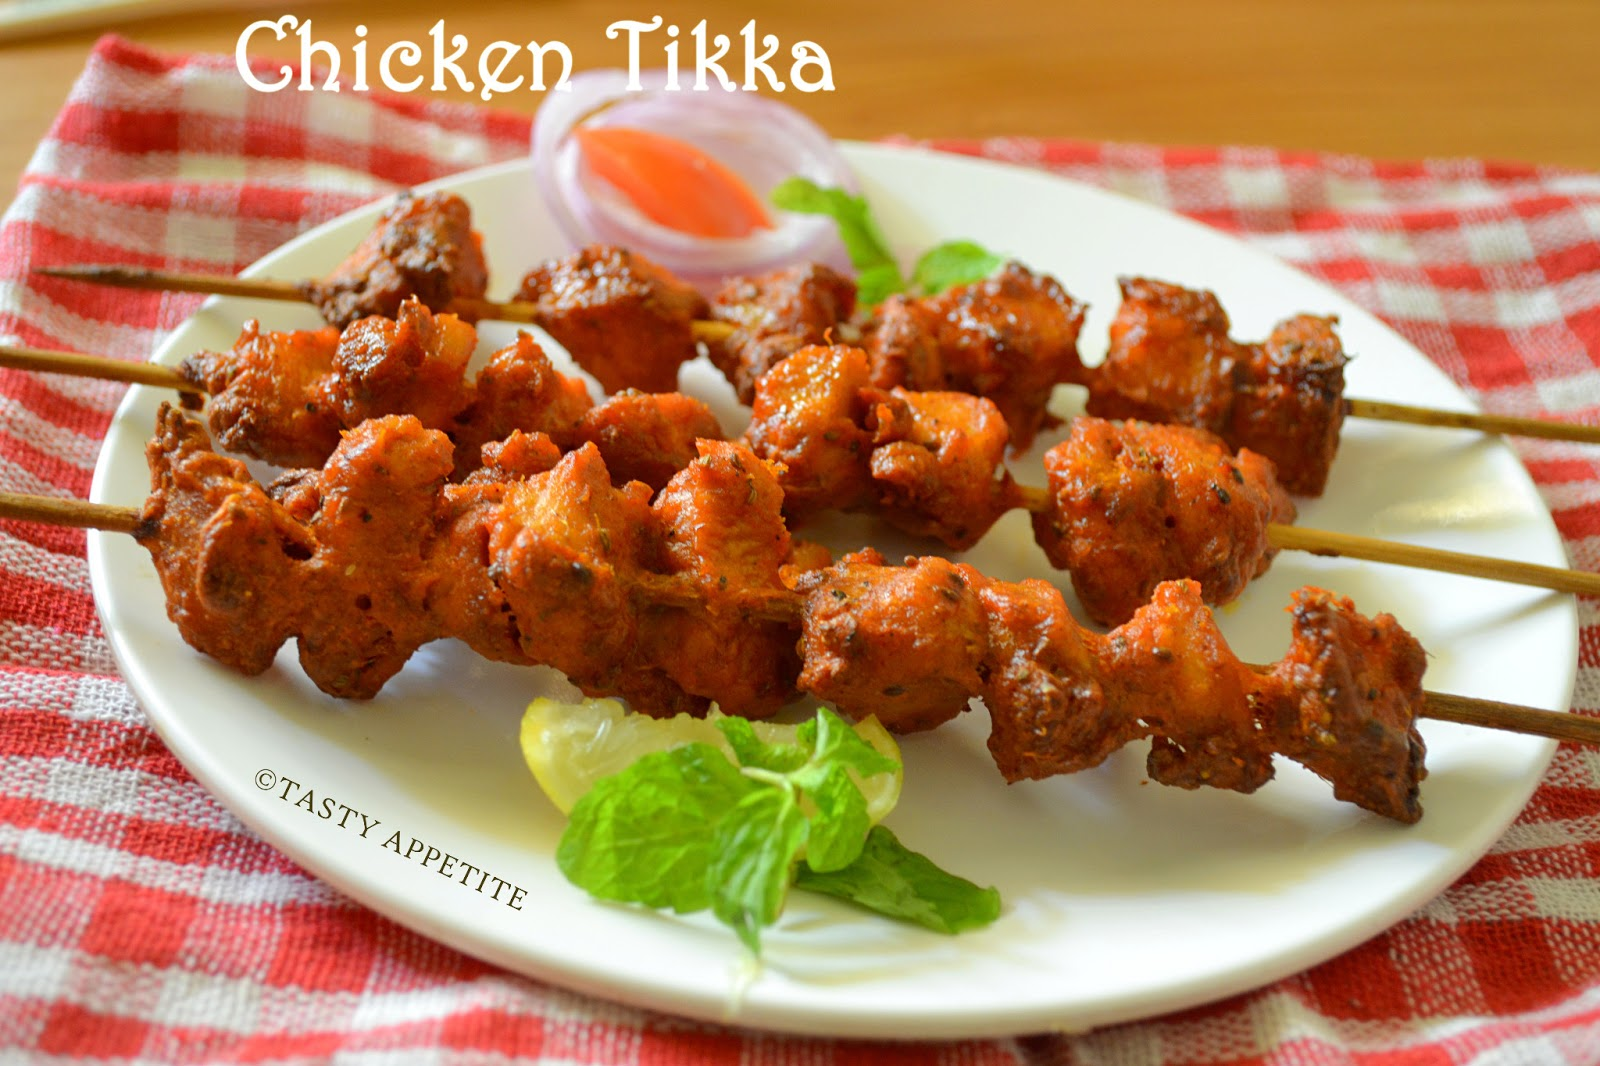 how to make chicken tikka easy step by step recipe